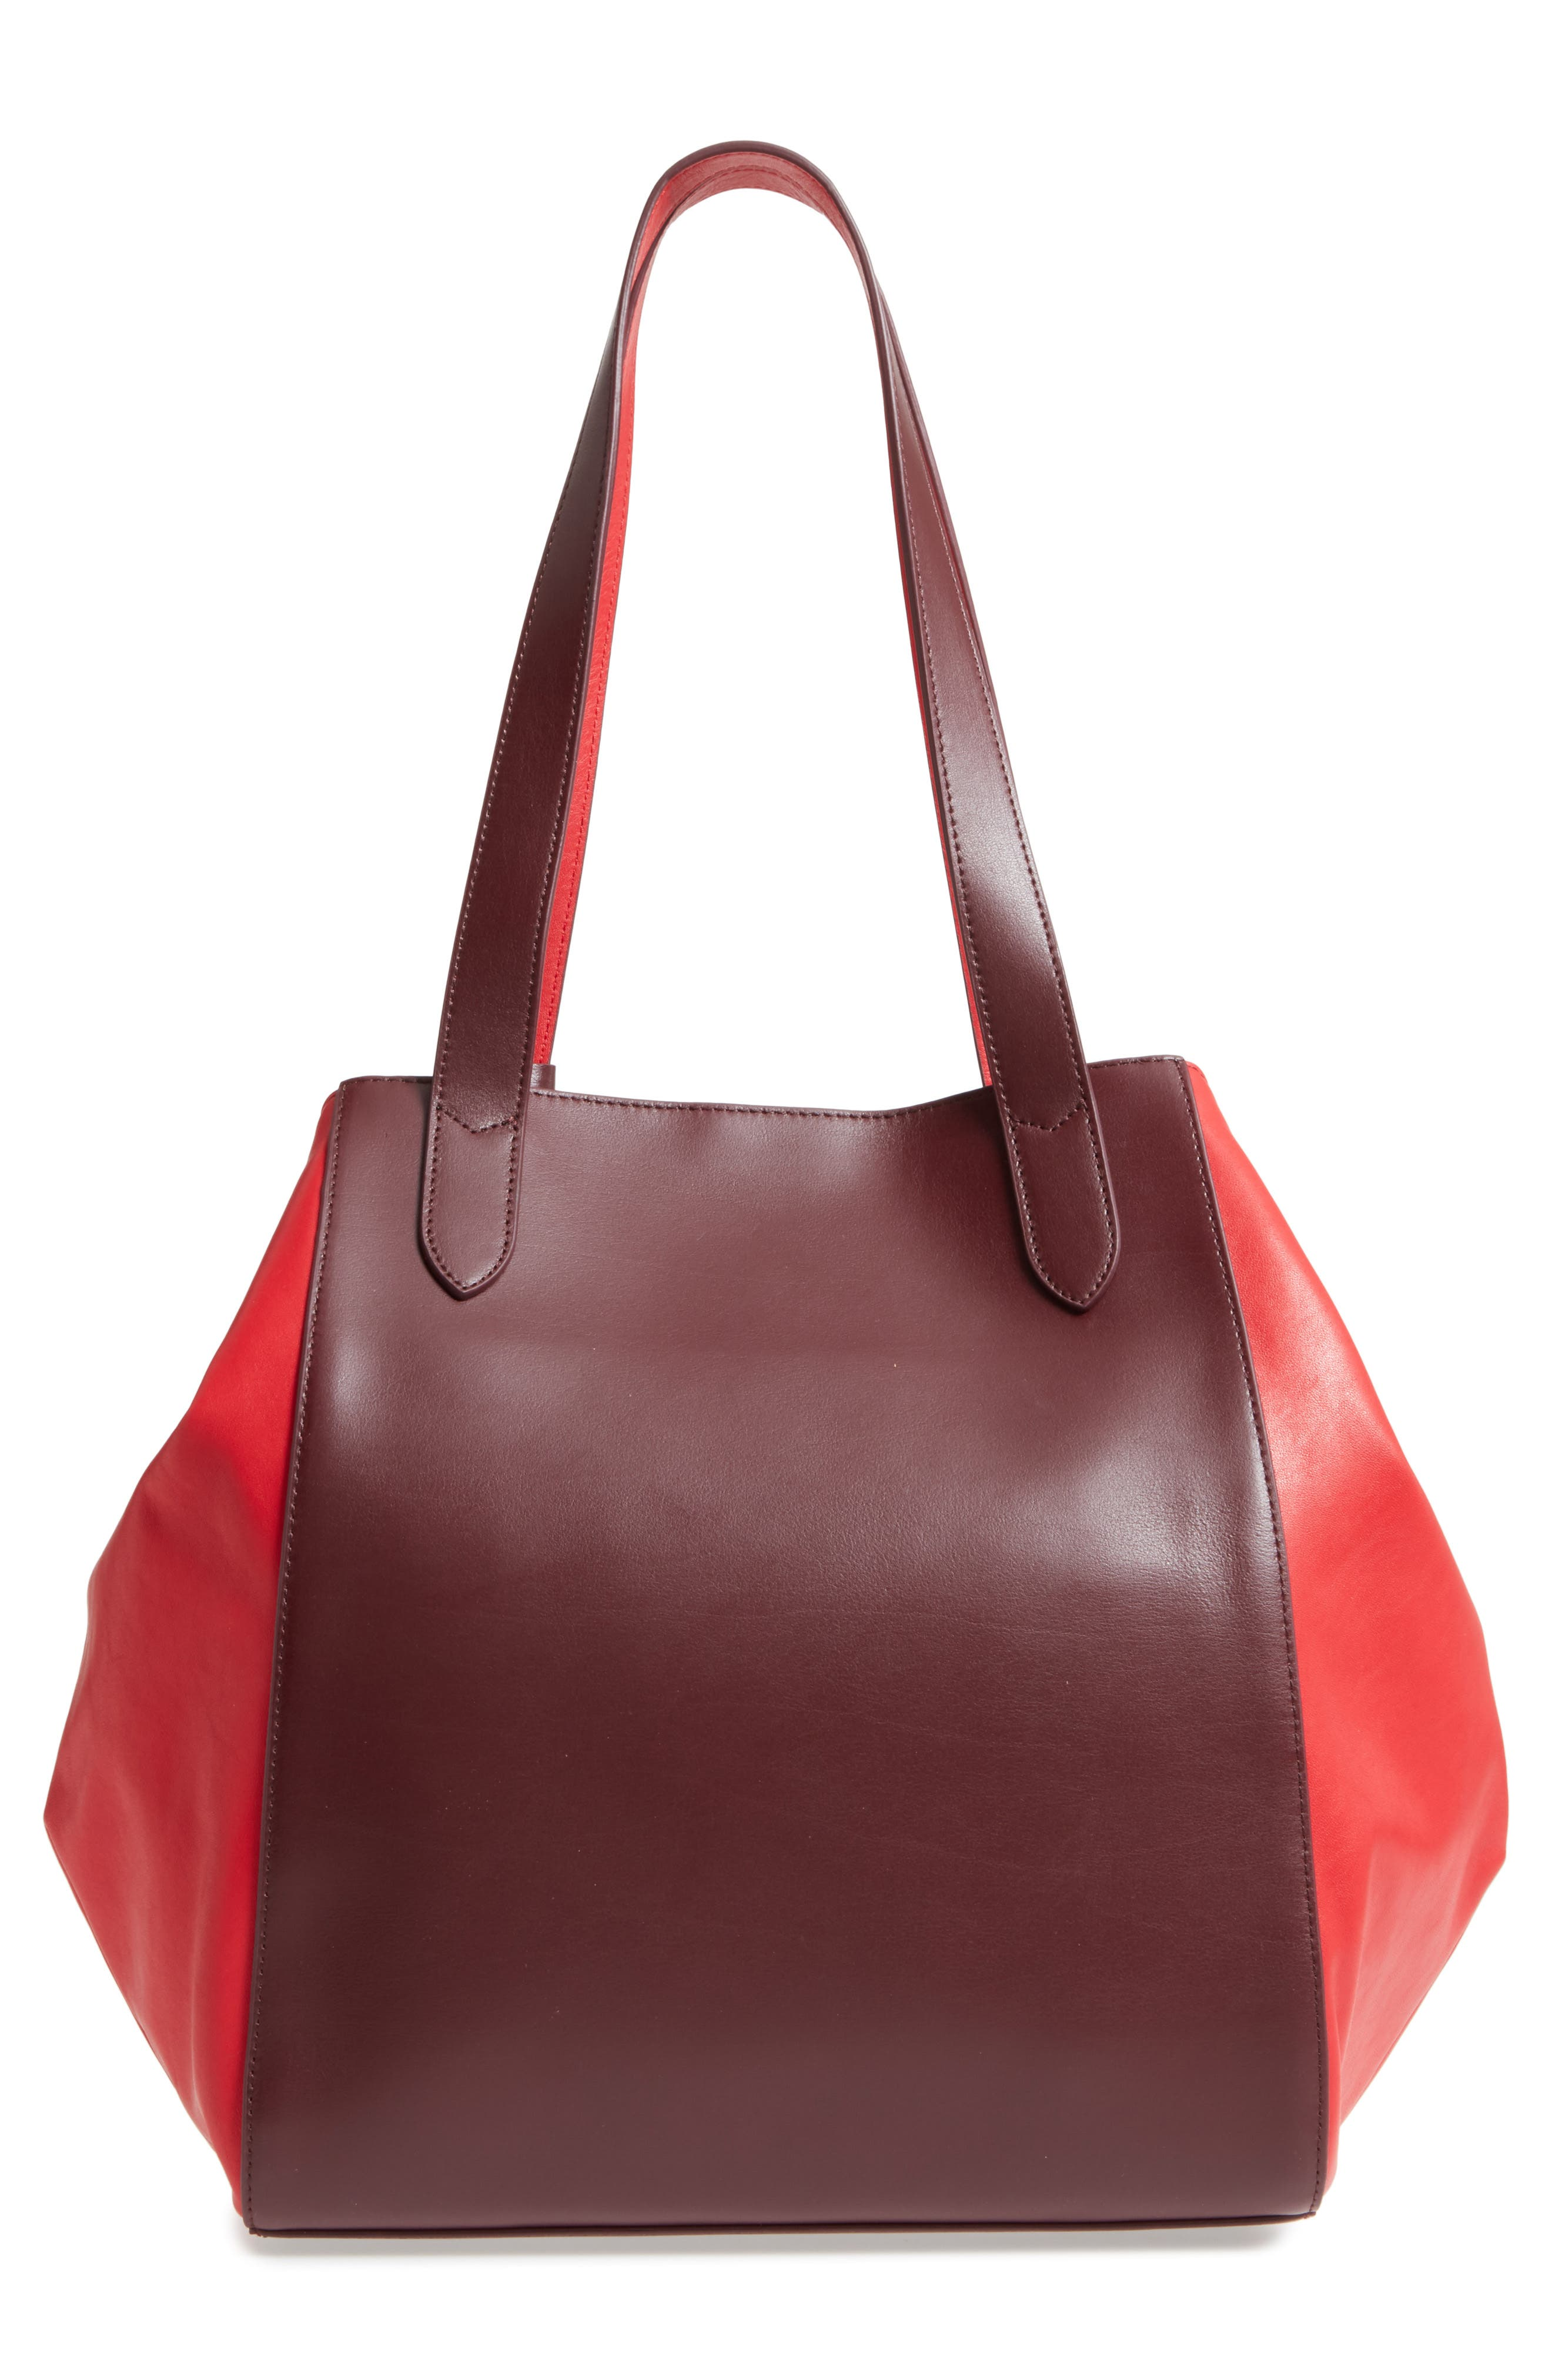 Downtown Charlize RFID Leather Tote,                             Alternate thumbnail 3, color,                             Red/ Chianti